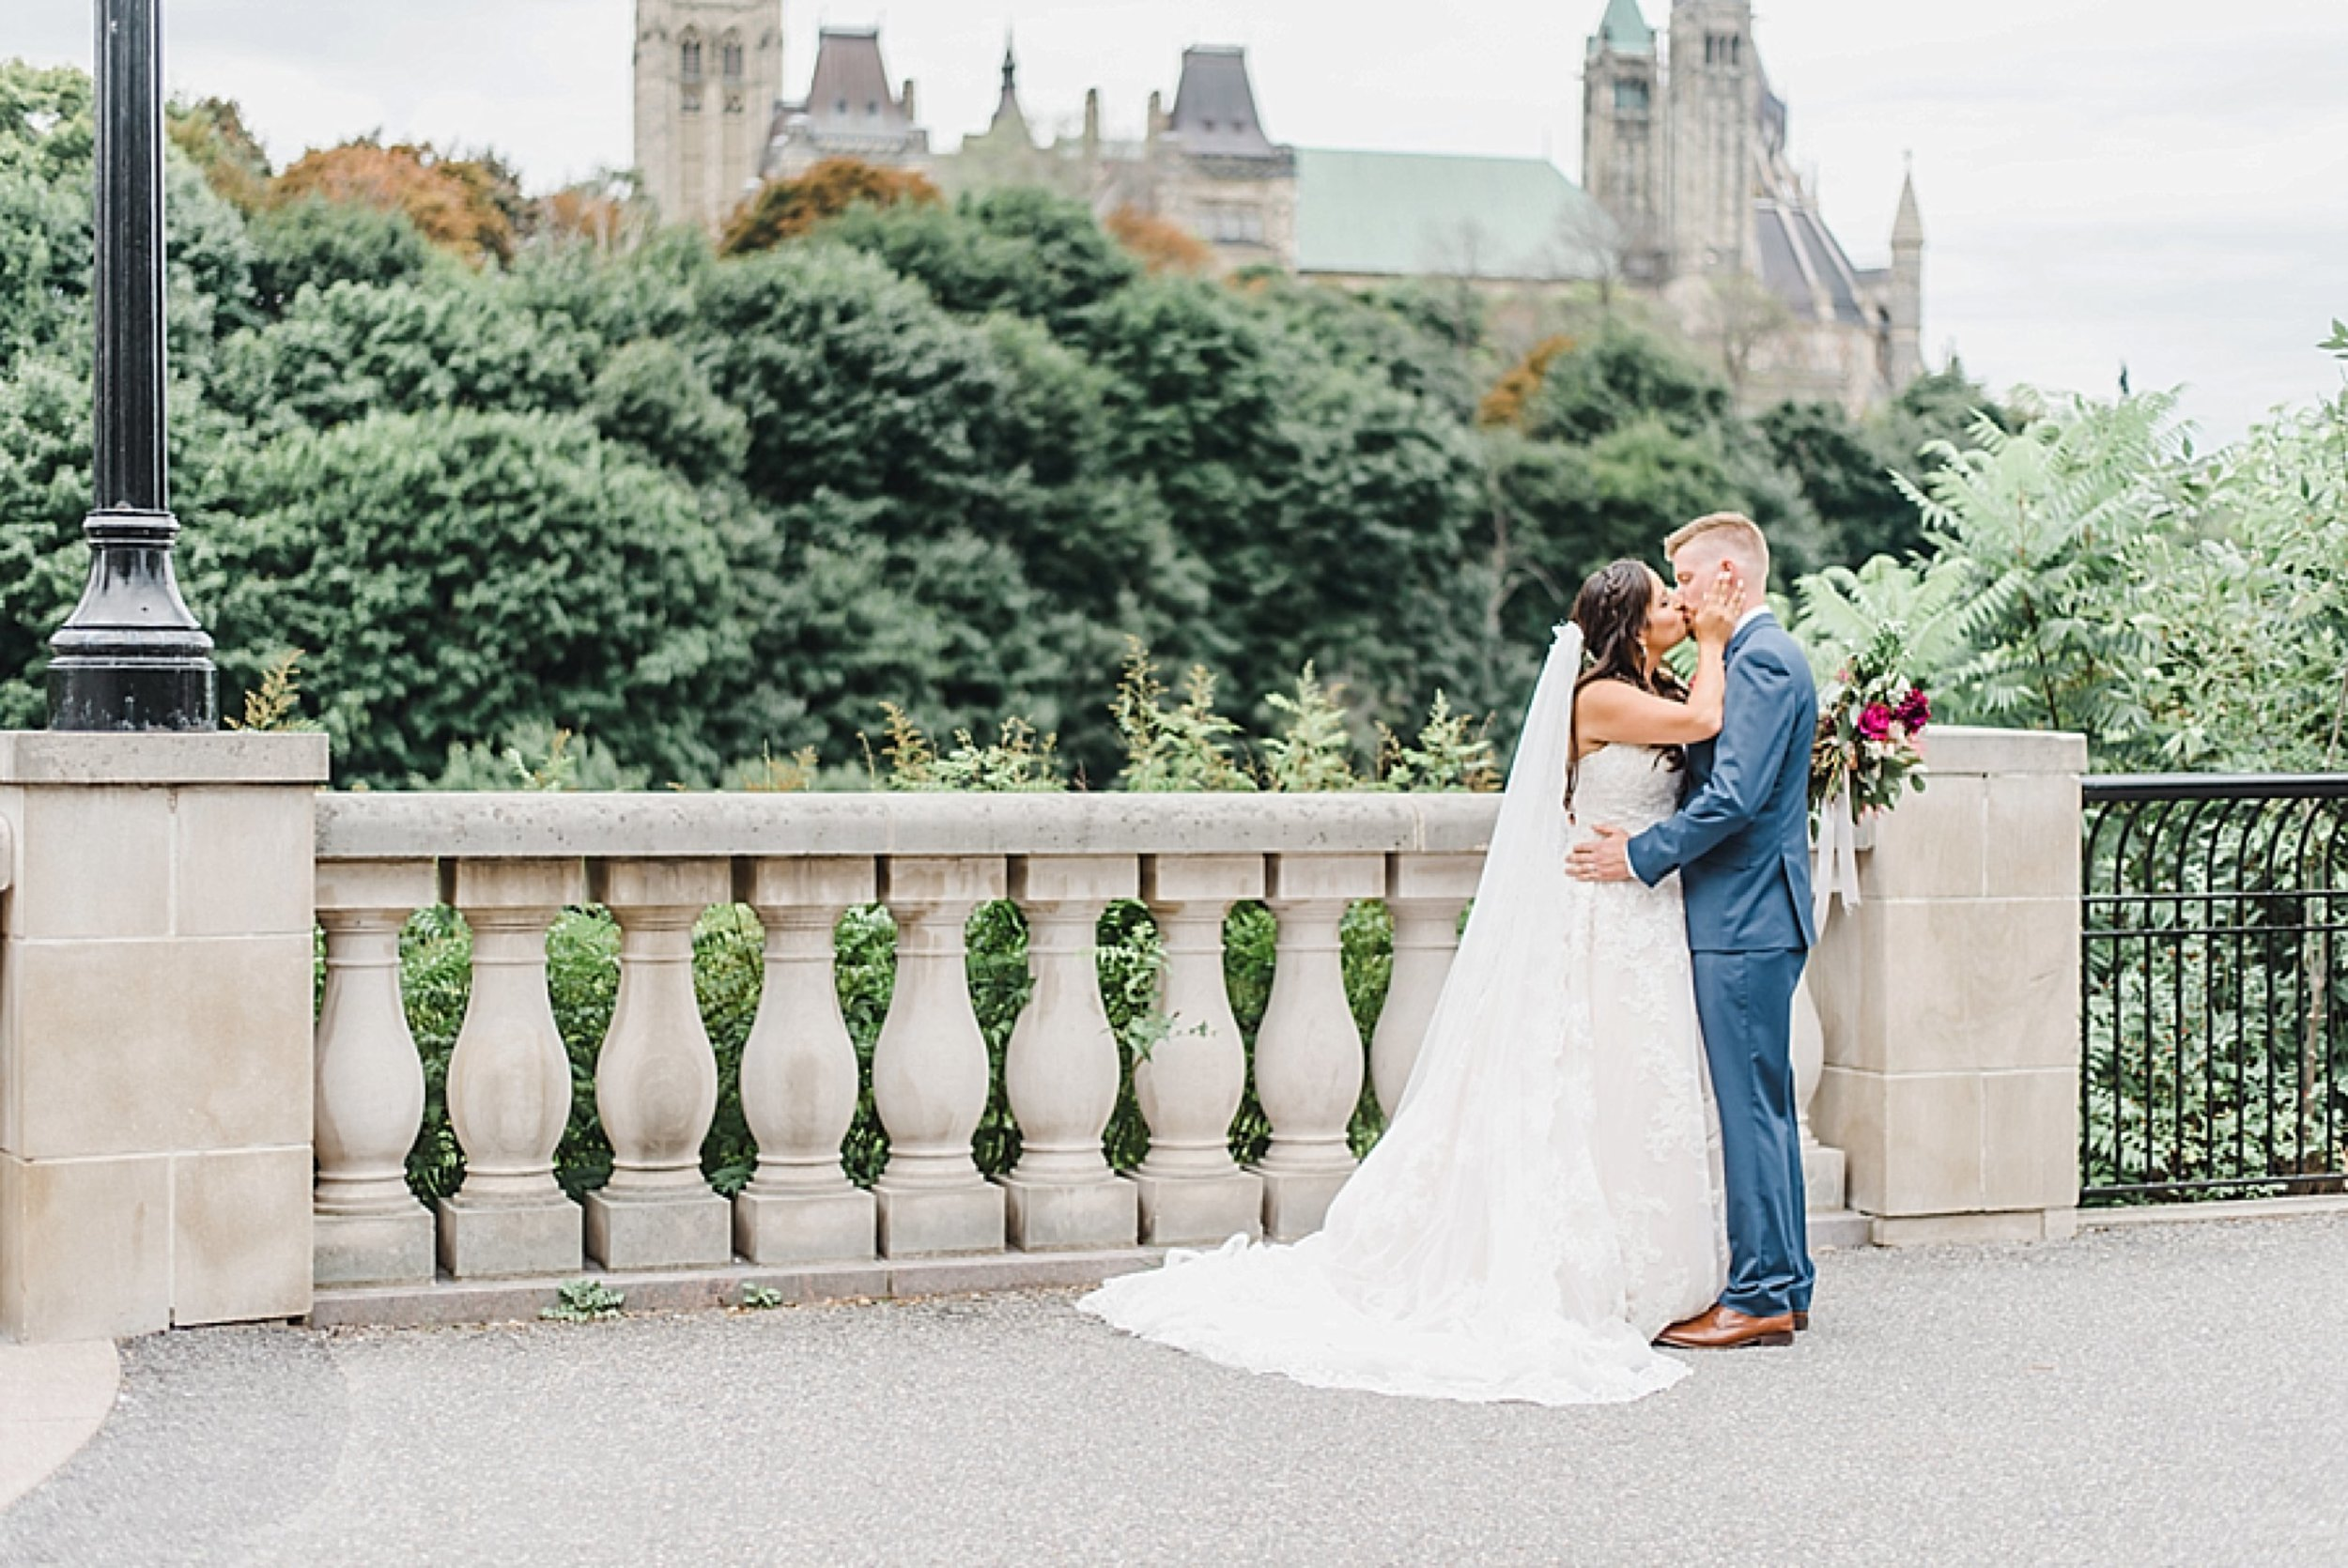 light airy indie fine art ottawa wedding photographer | Ali and Batoul Photography_1626.jpg